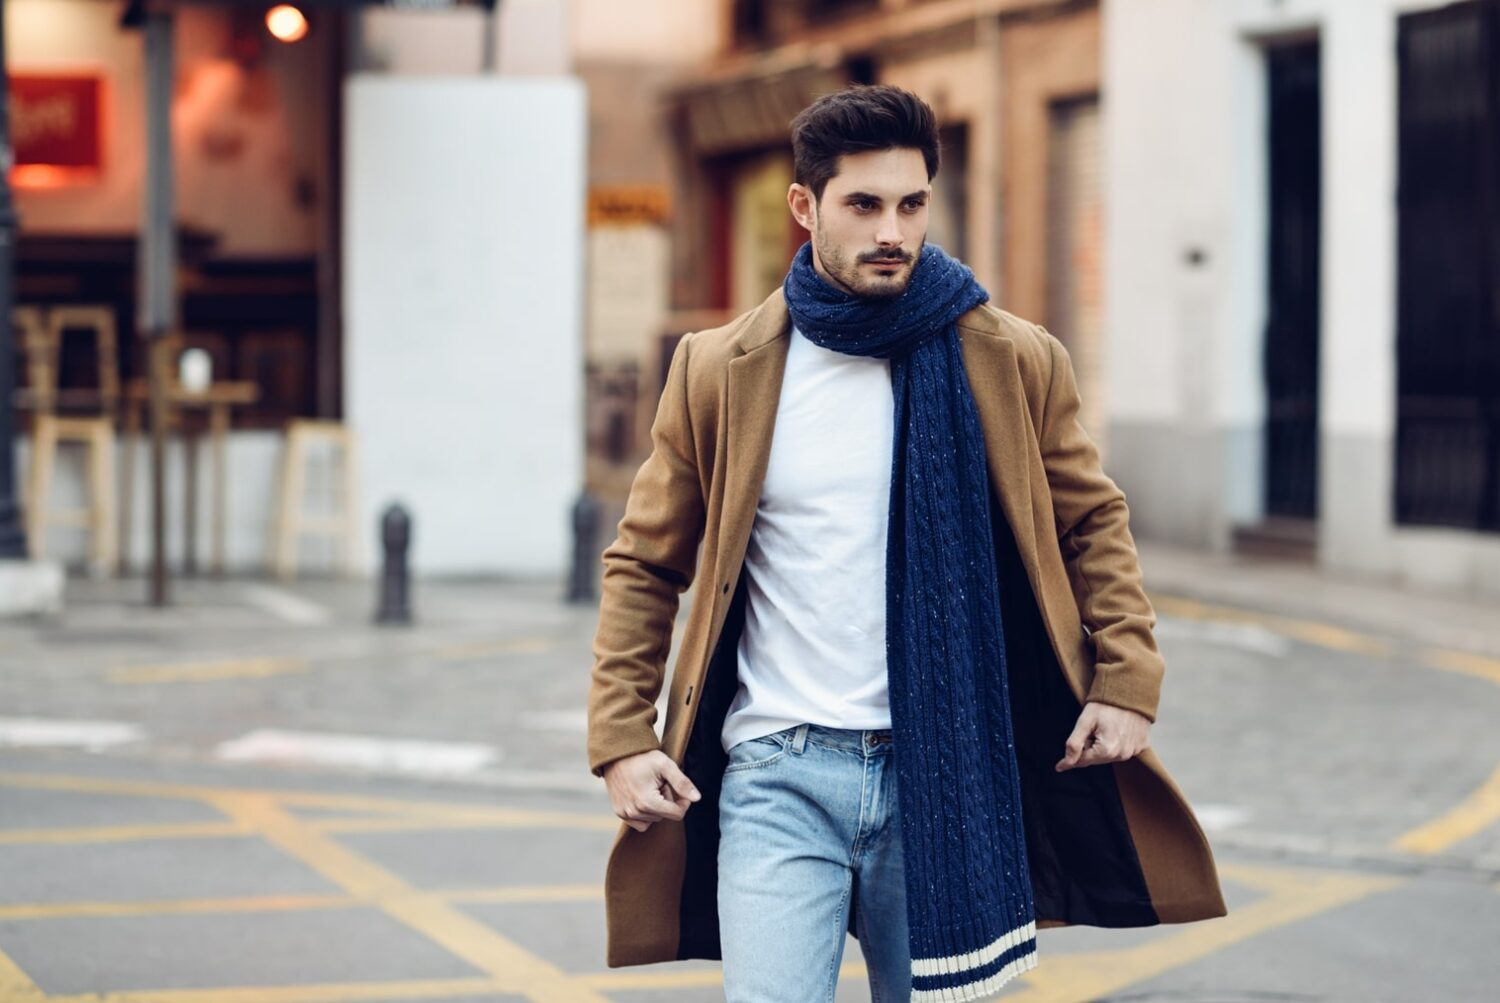 young-man-wearing-winter-clothes-in-the-street-PSZFEBV-min